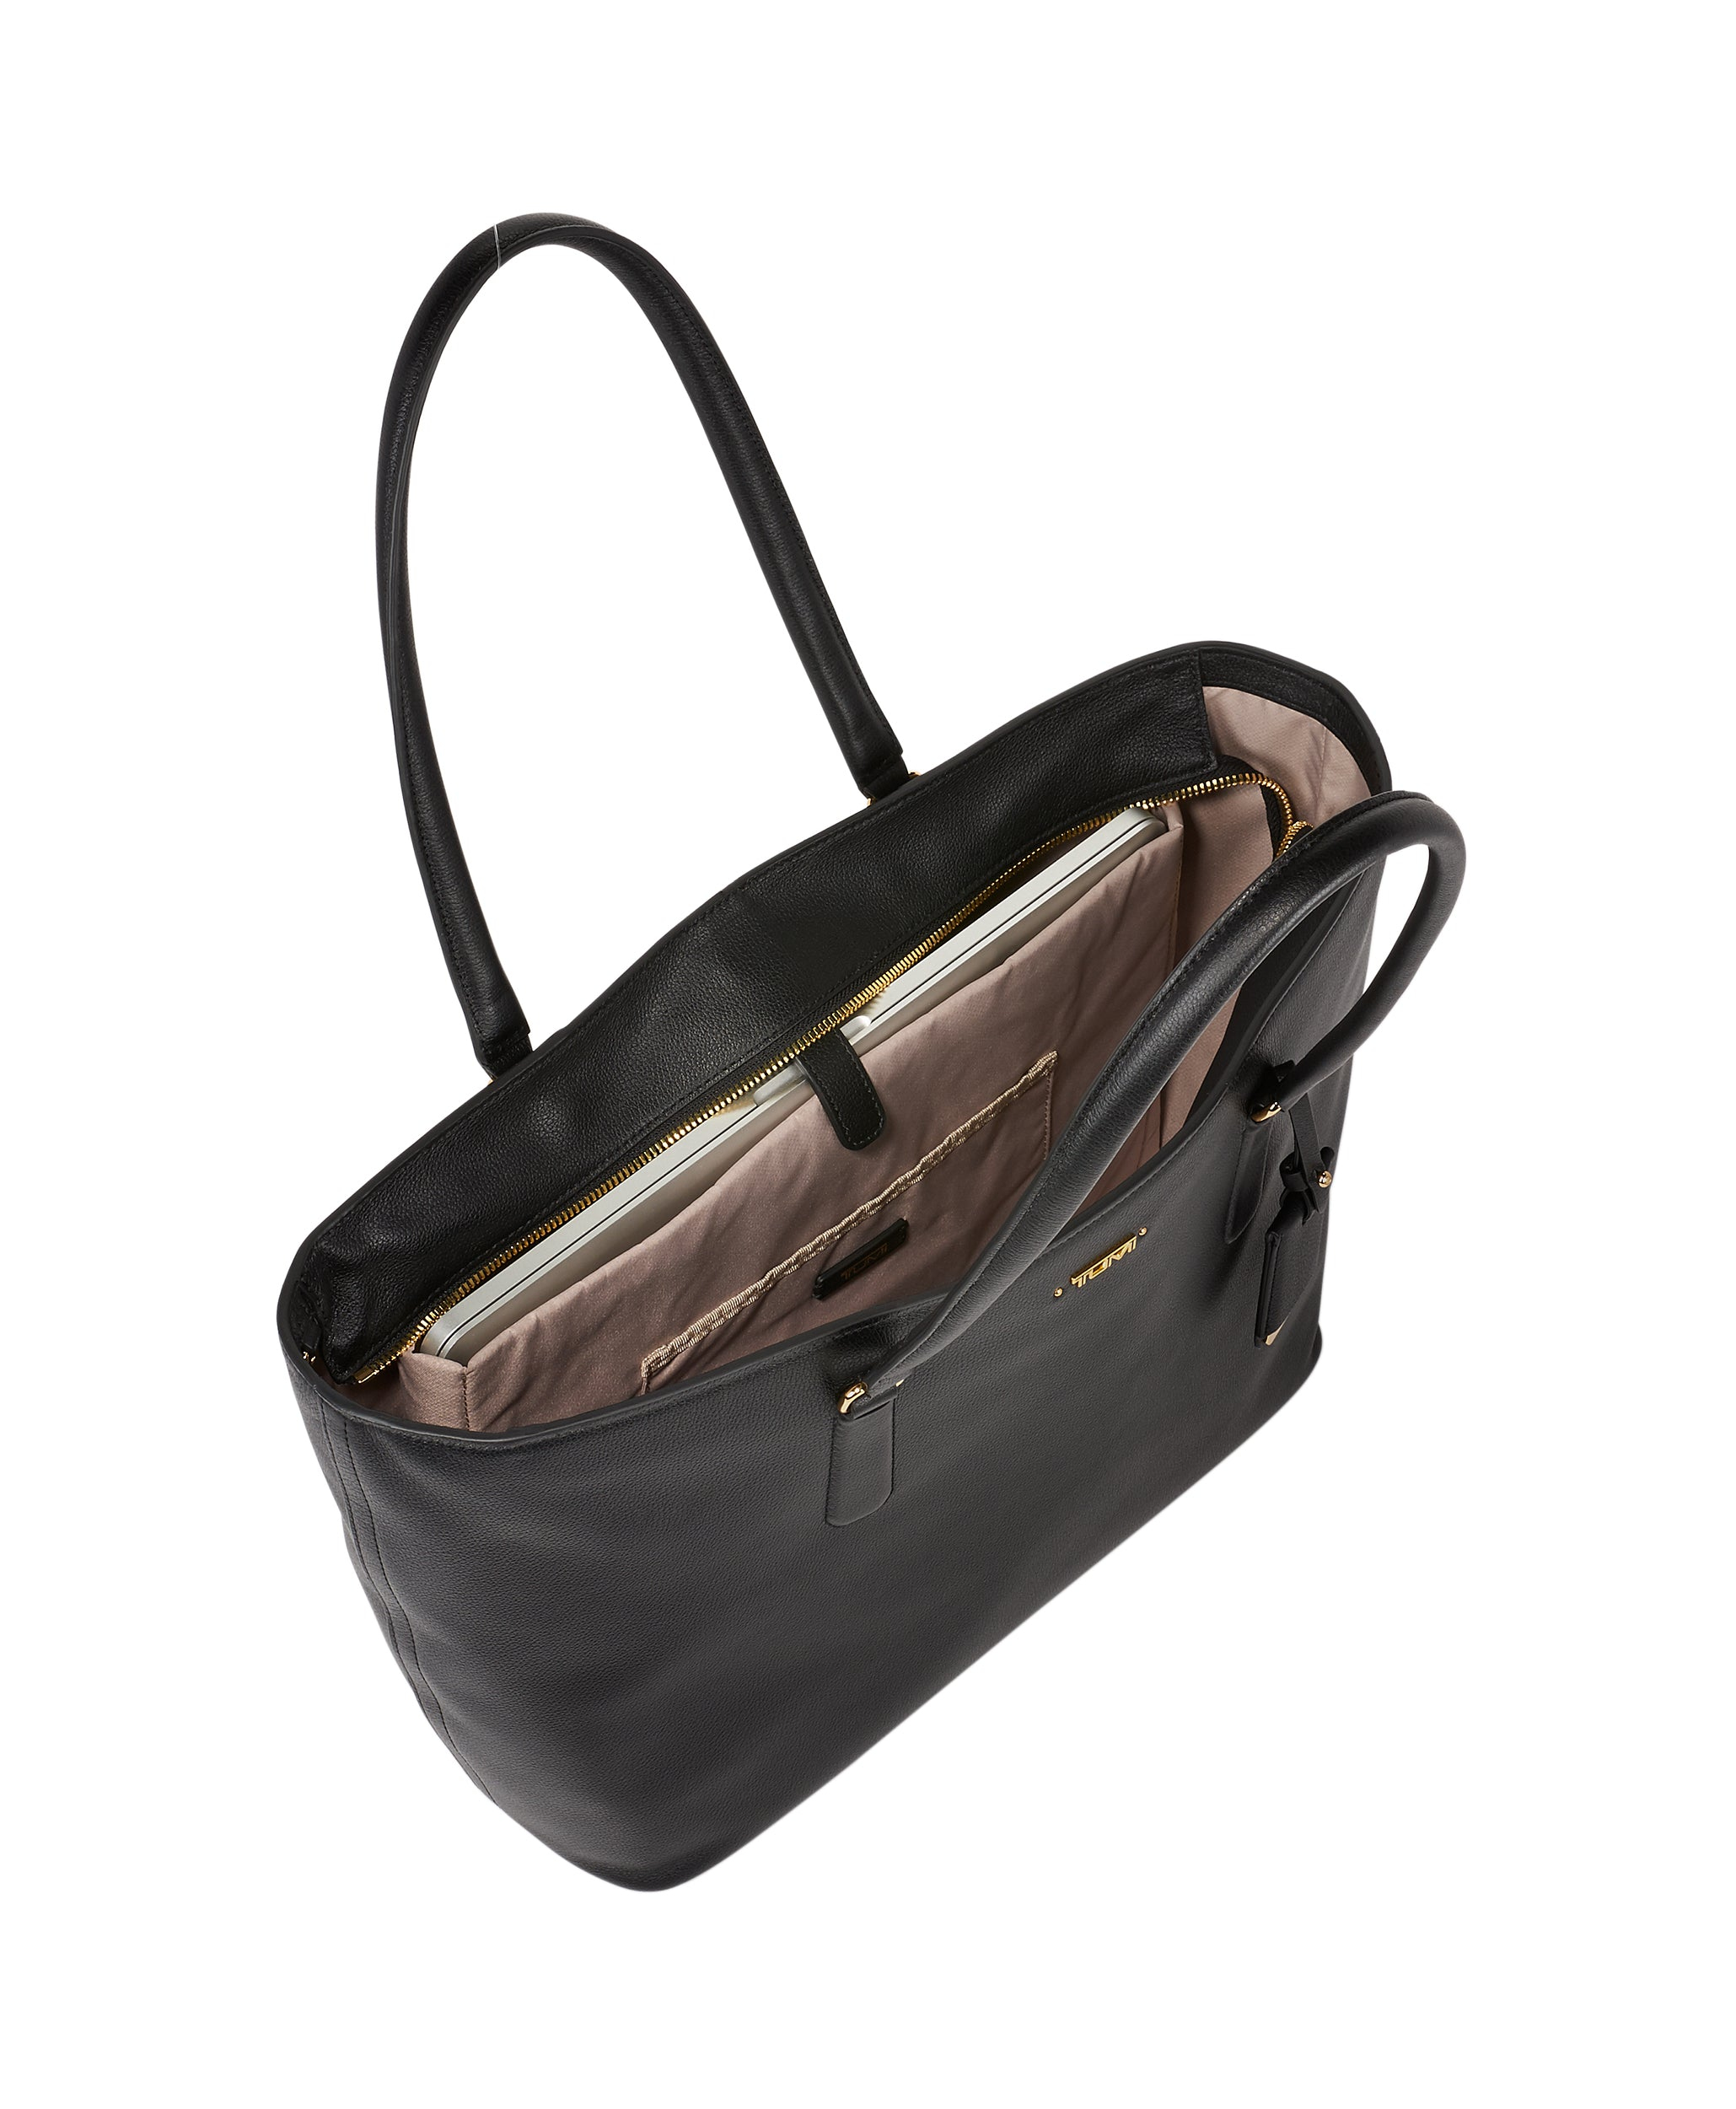 Tumi Voyageur Carolina Leather Tote - Black